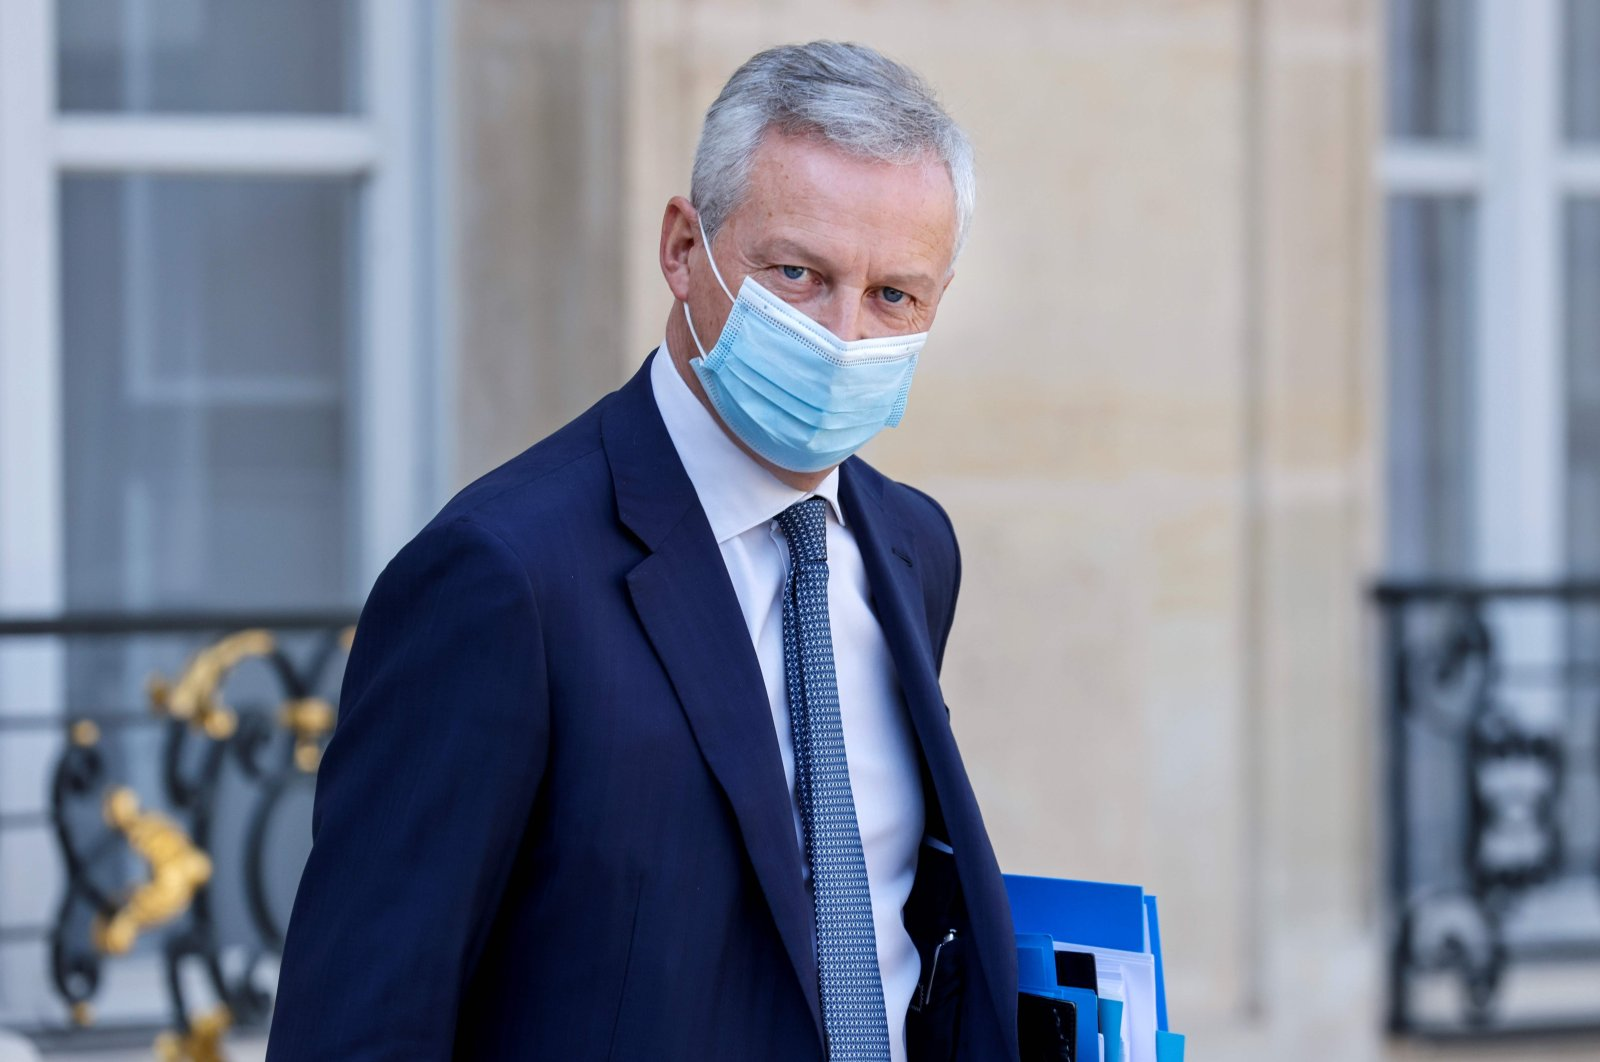 French Economy and Finance Minister Bruno Le Maire, wearing a face mask, leaves after the weekly cabinet meeting at the Elysee Palace in Paris, Sept 16, 2020. (AFP Photo)